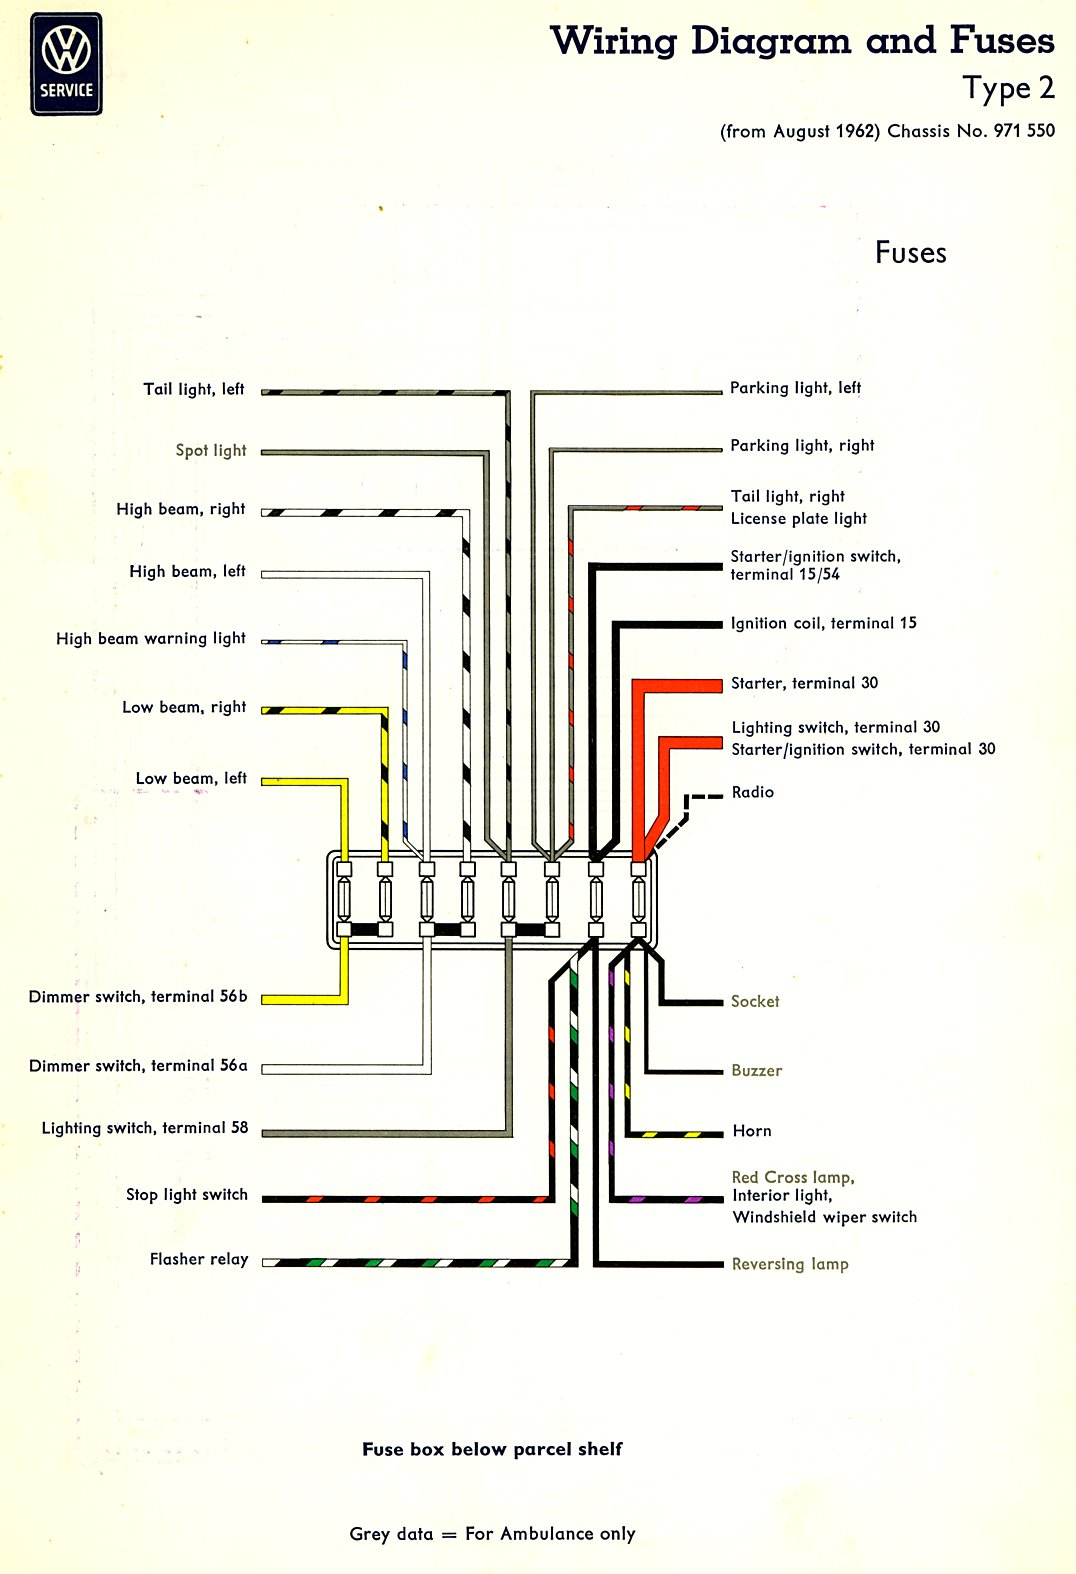 Thesamba type 2 wiring diagrams publicscrutiny Choice Image